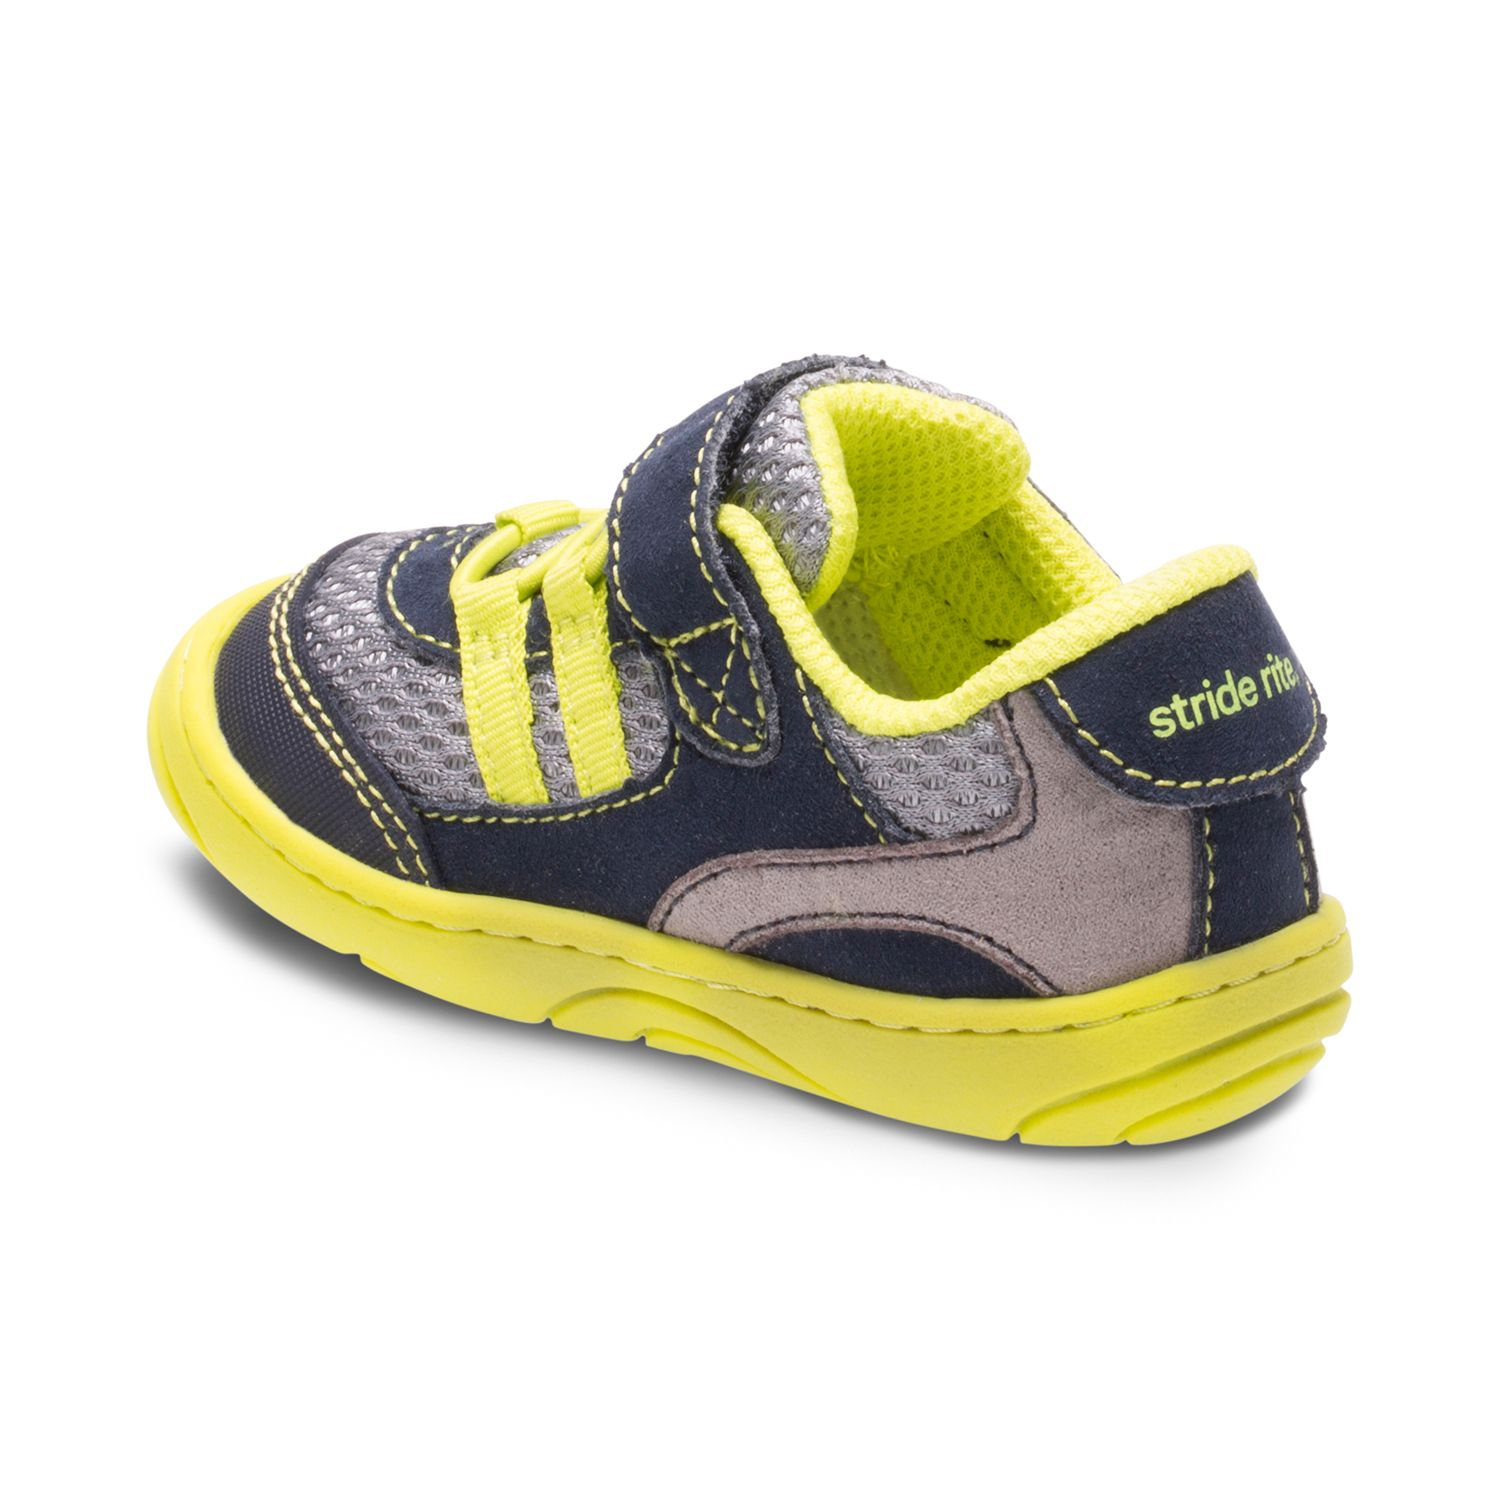 Stride Rite Baby Shoes